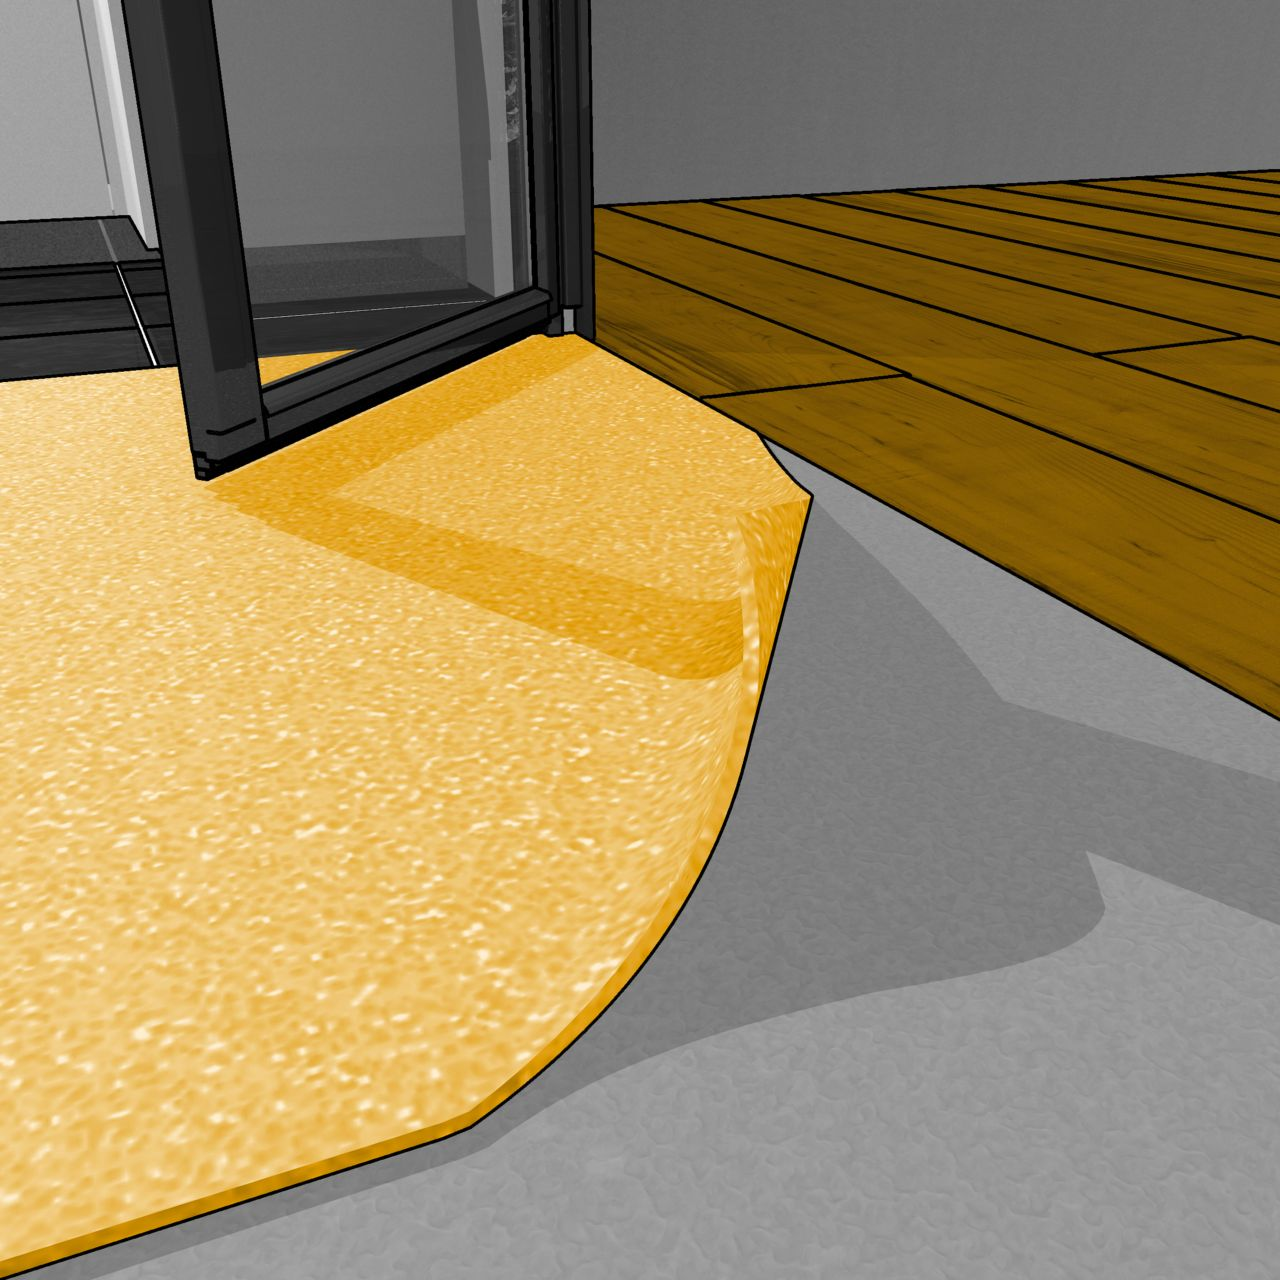 Illustration of interior kitchen floor adhesive application during offsite construction